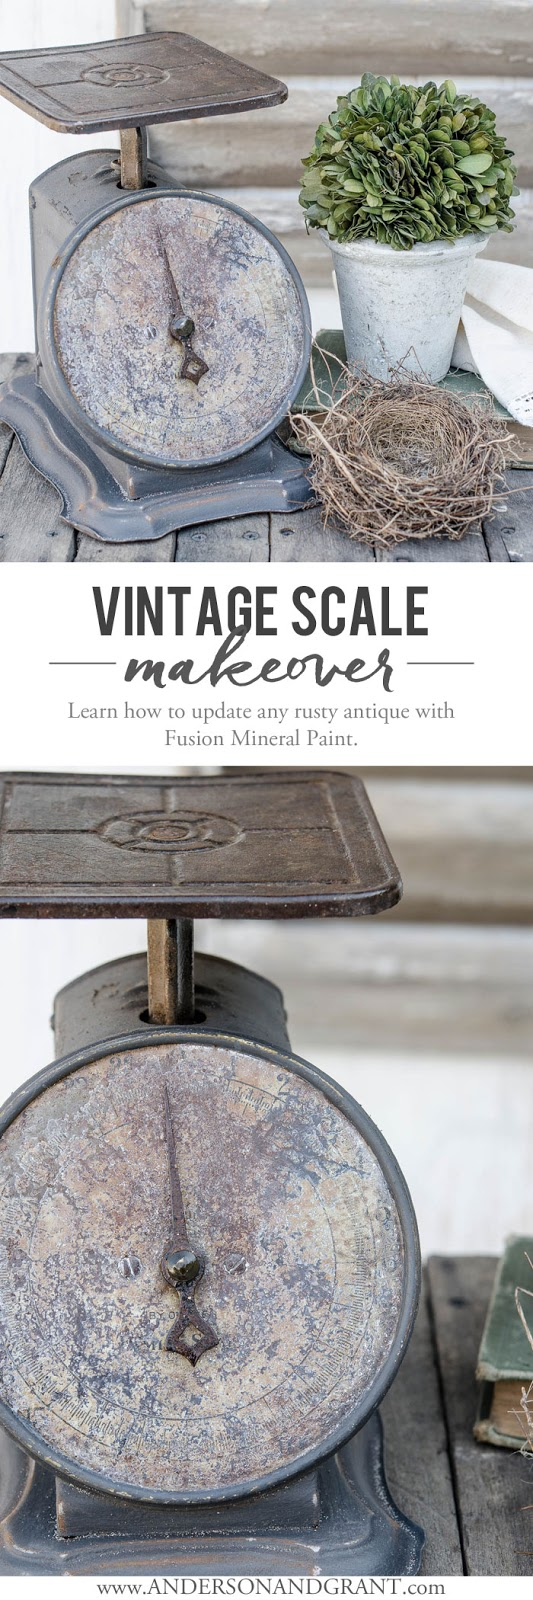 A rusty vintage scale is completely transformed using Fusion Mineral Paint.  Now it is perfect for my rustic farmhouse decorating.  |  www.andersonandgrant.com